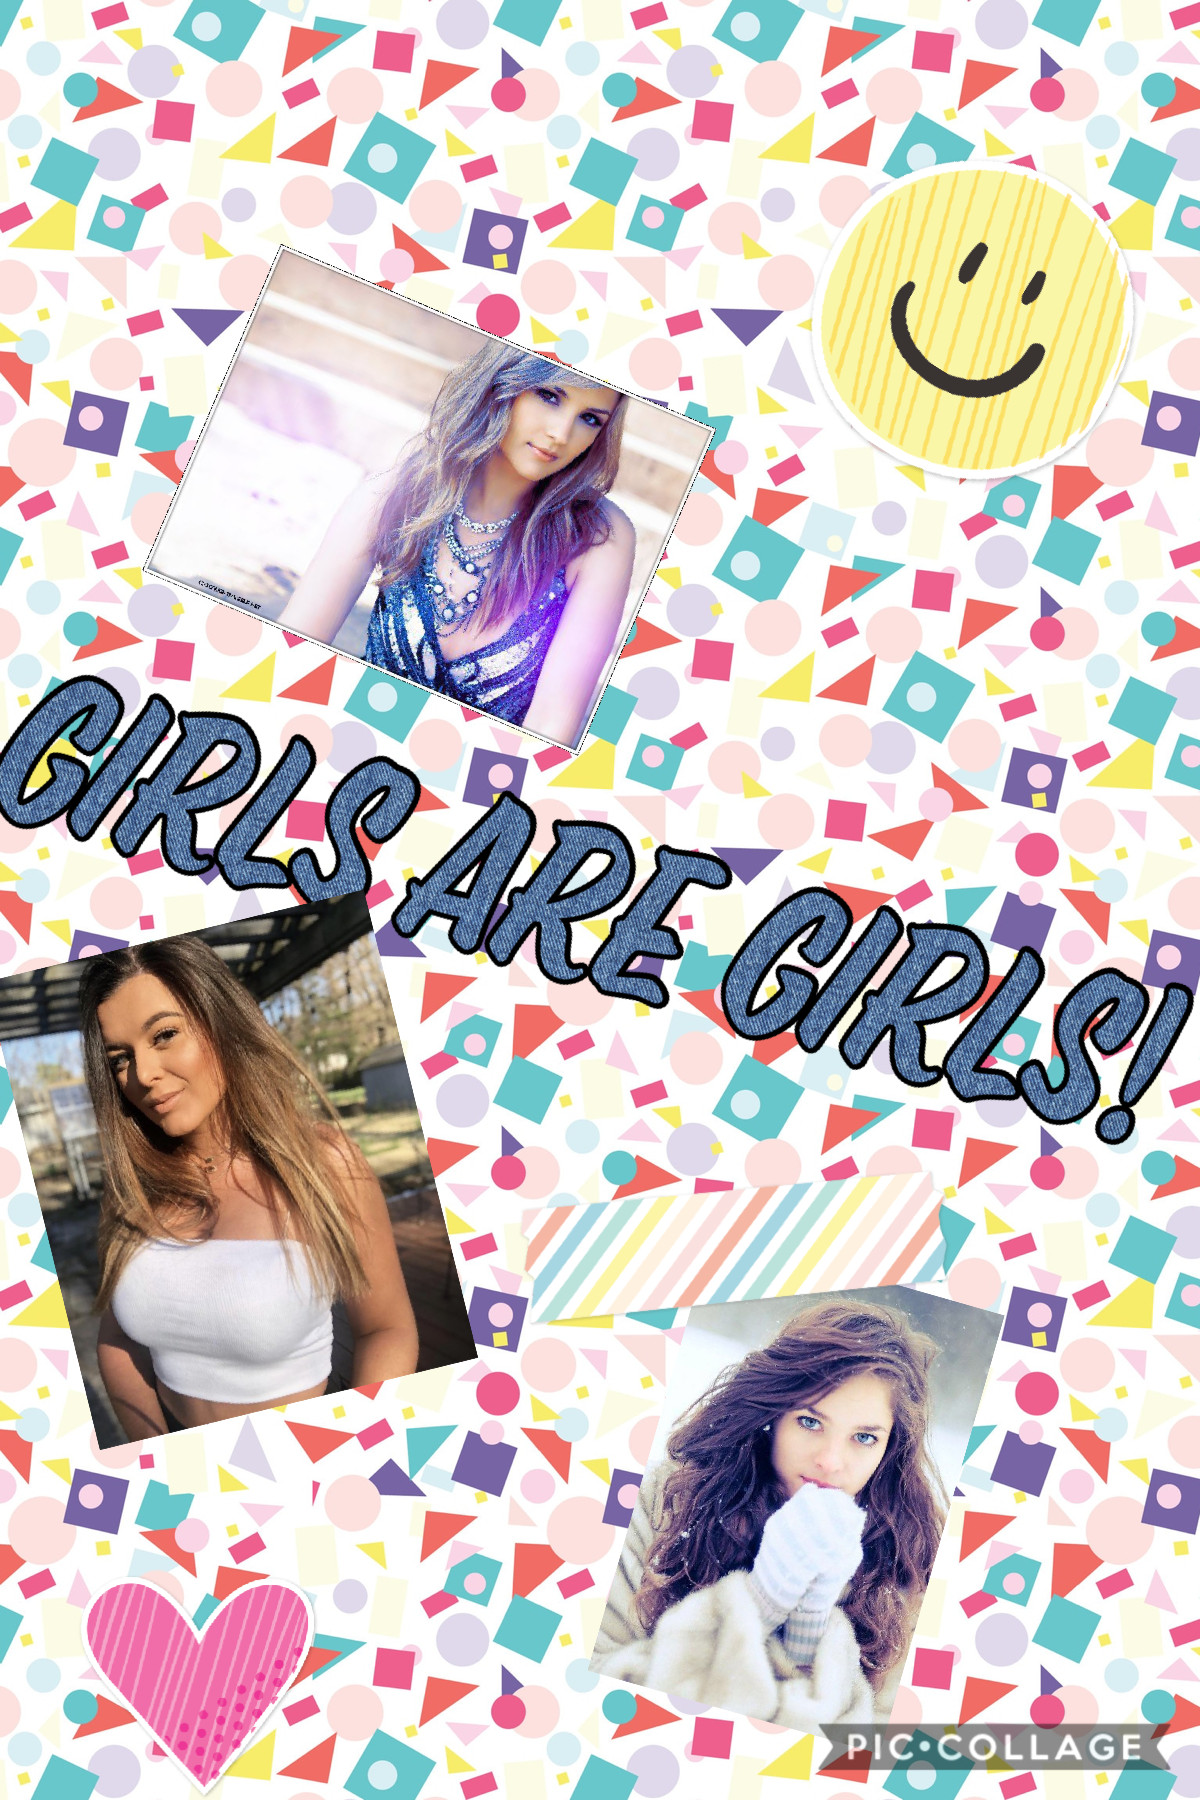 Let us Girls are Girls